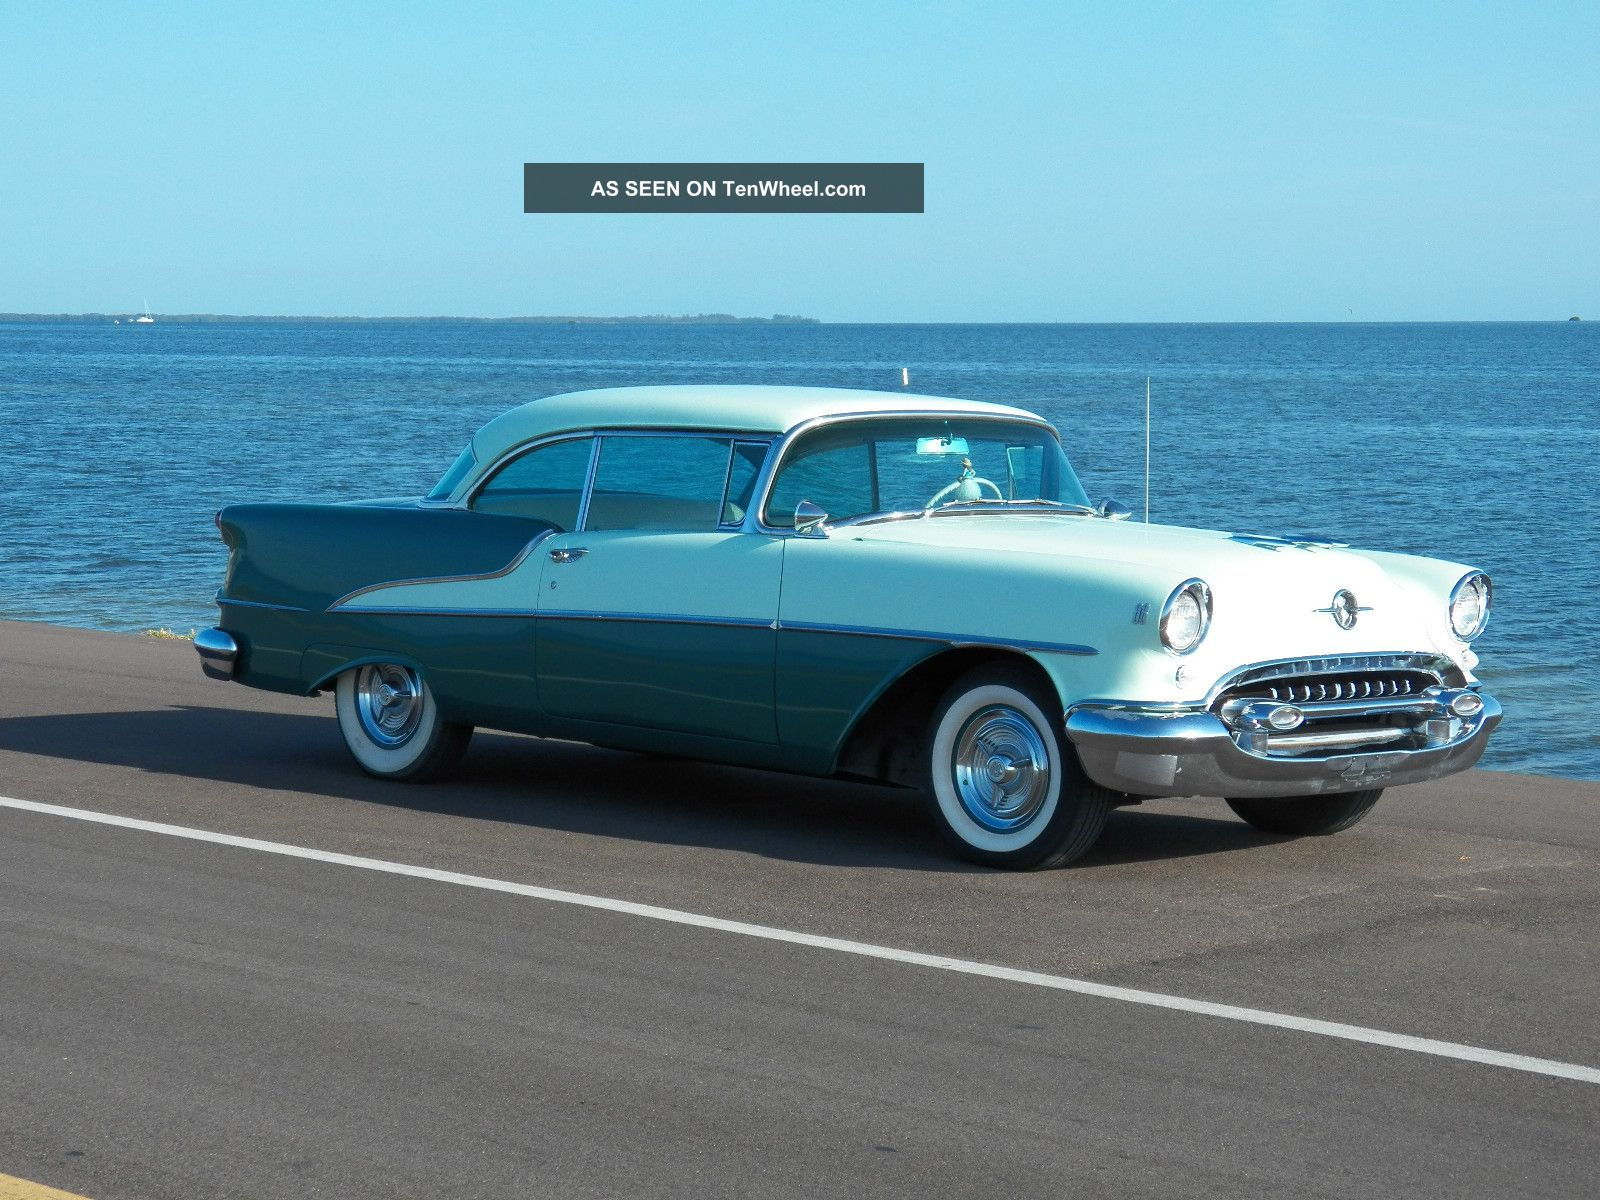 hight resolution of  1955 1955 olds holiday 88 wiring diagram oldsmobile on 1955 mercury wiring diagram 1955 pontiac wiring